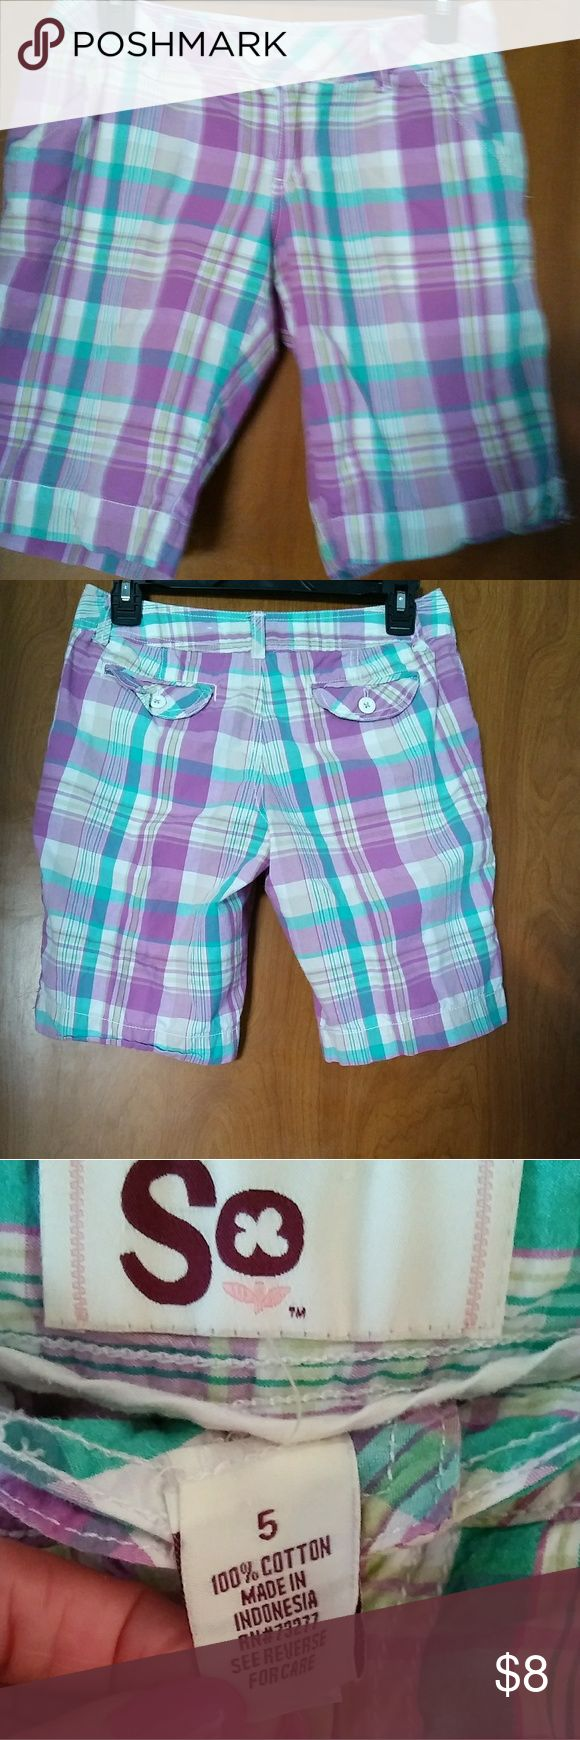 SO SHORTS Multi color shorts size 5, purple, white, green & yellow. Gently worn good condition.  Feel free to make offer or bundle & save. If you have any questions please let me know. SO Shorts